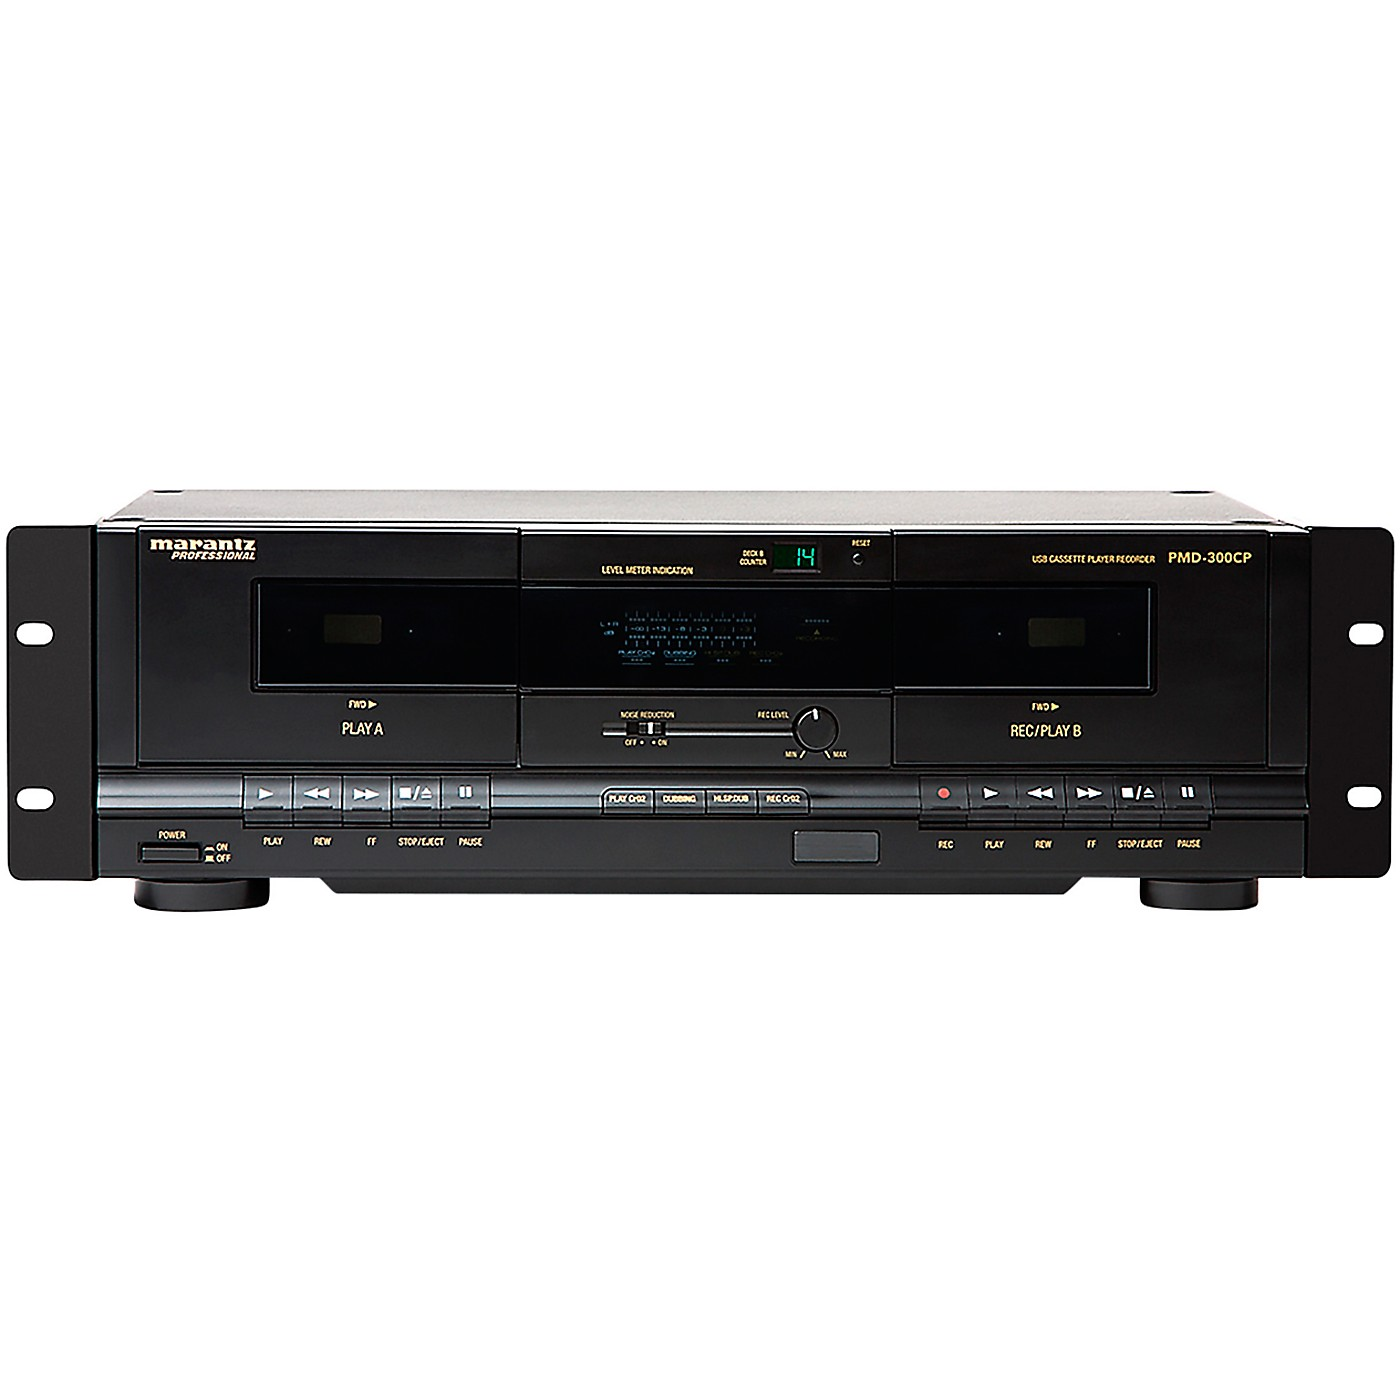 Marantz Professional PMD-300CP Dual Cassette Recorder/Player with USB thumbnail